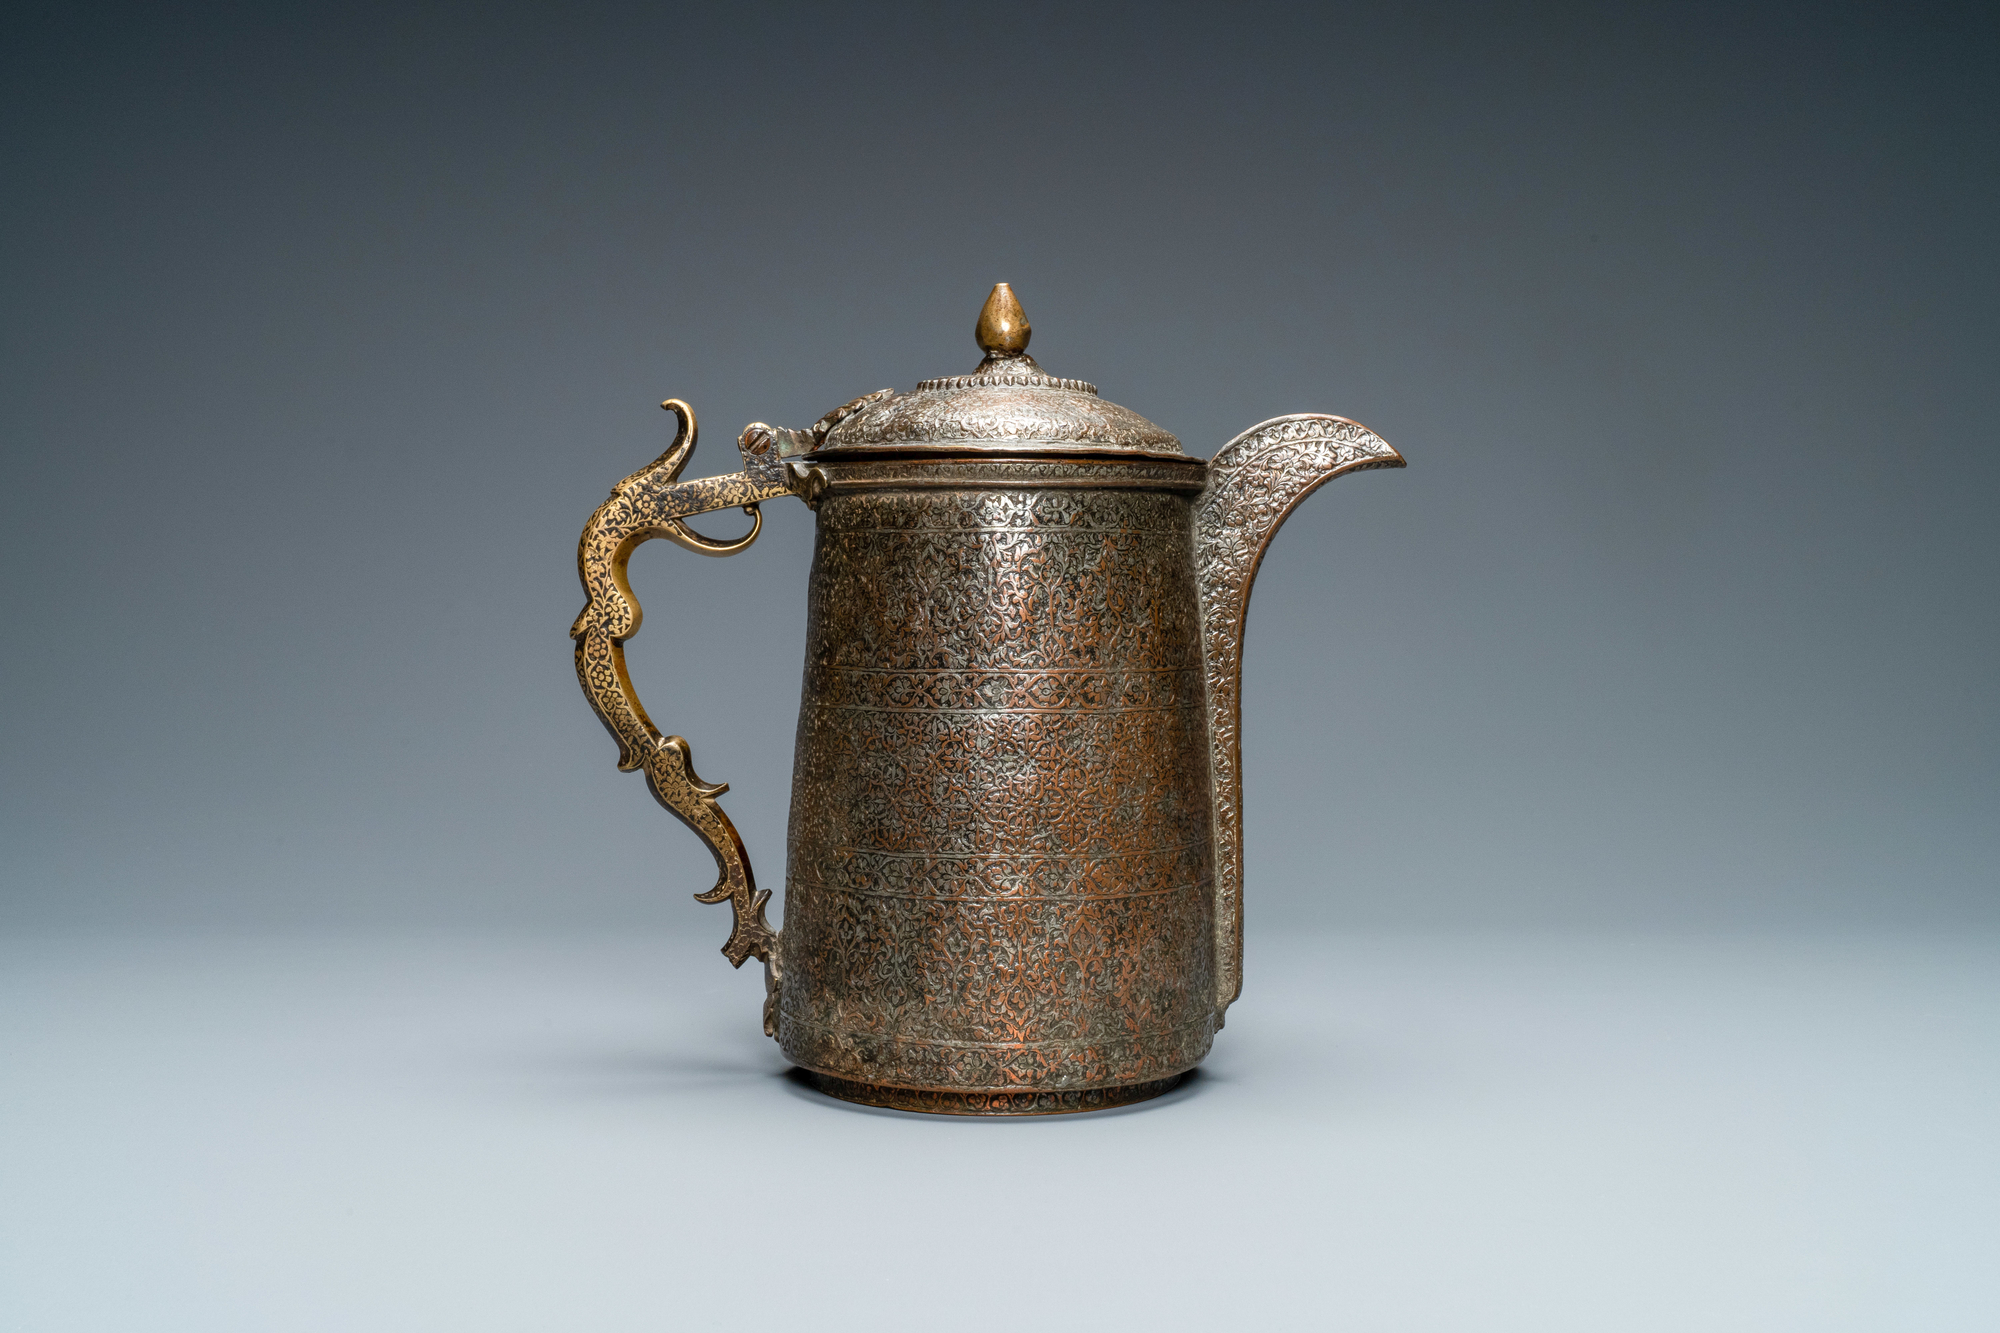 A Safavid parcel-gilt and tinned copper mug and cover, Persia, 17/18th C. - Image 3 of 7